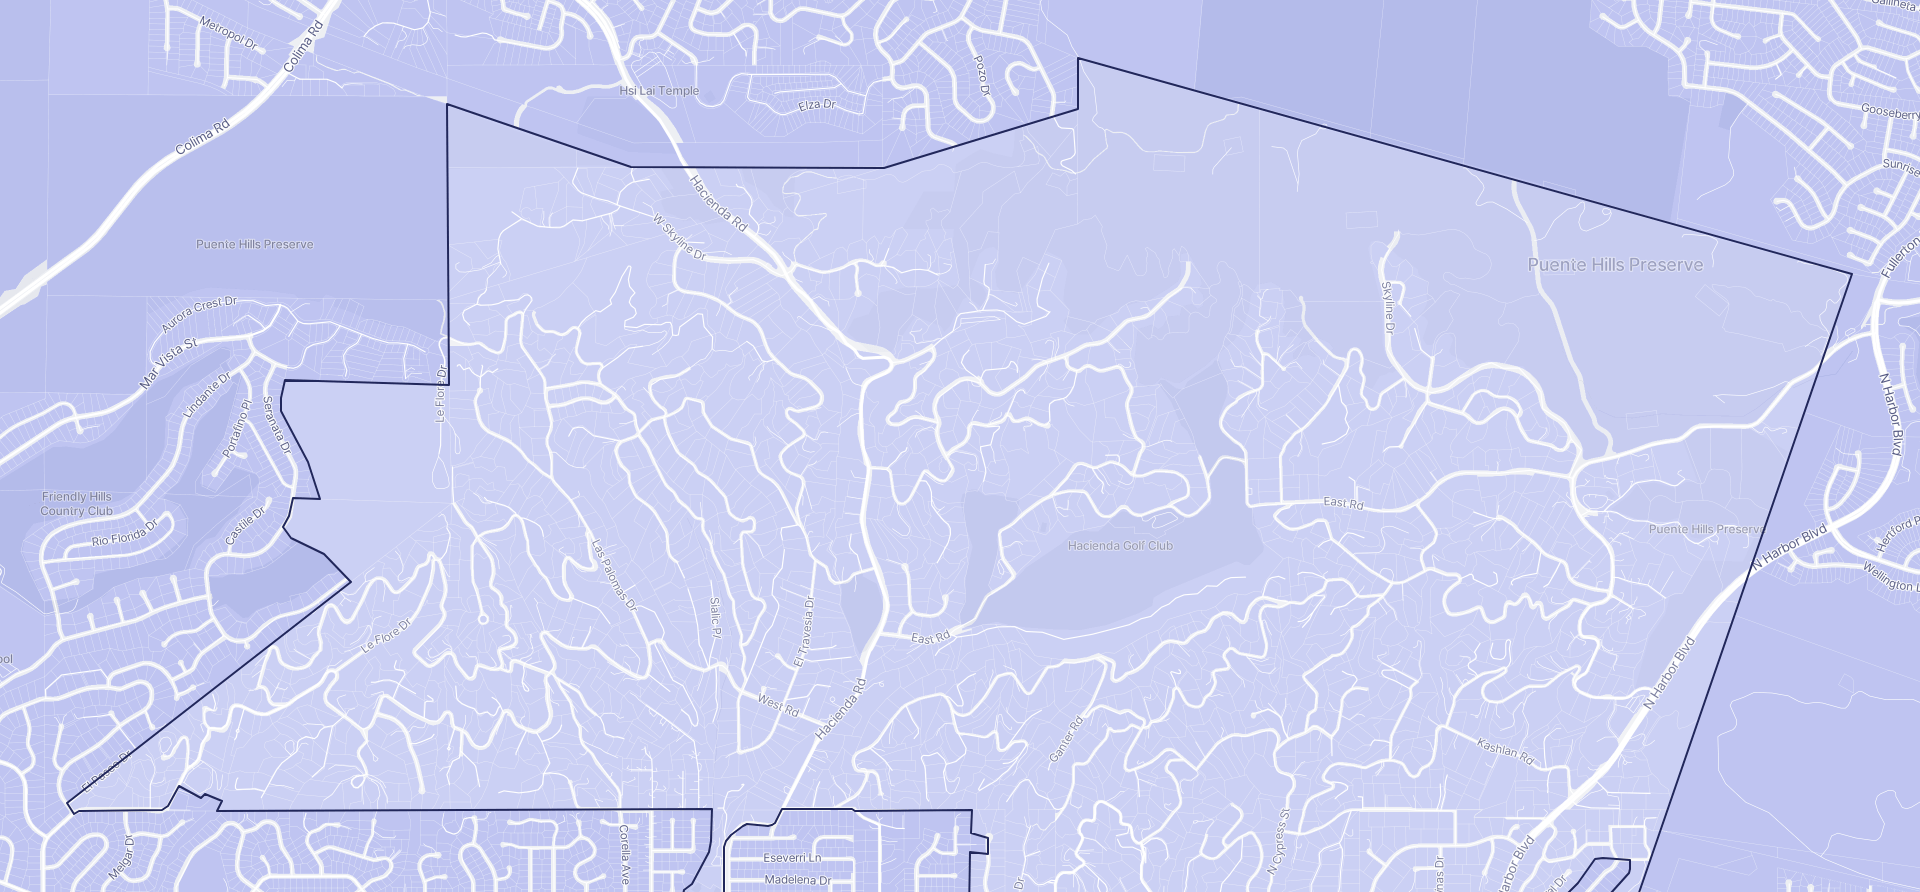 Image of La Habra Heights boundaries on a map.